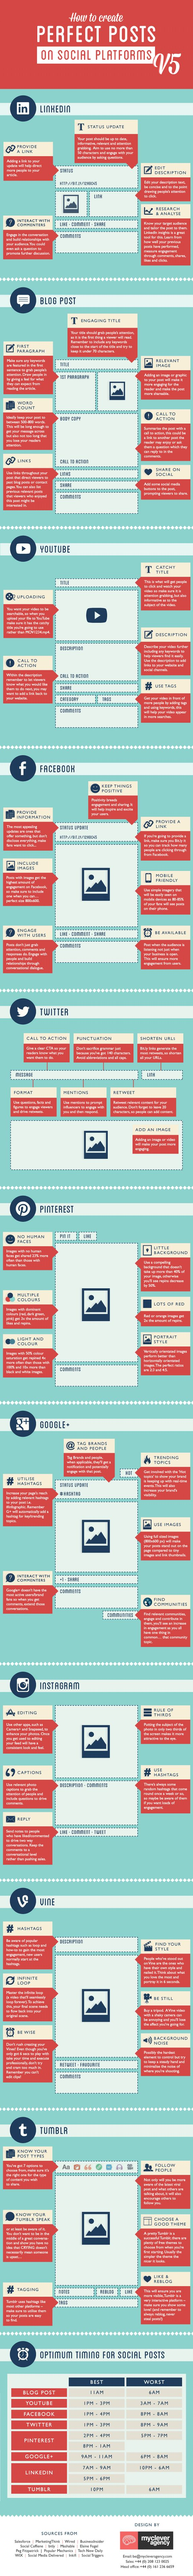 Social Media Campaigns Cheat Sheet